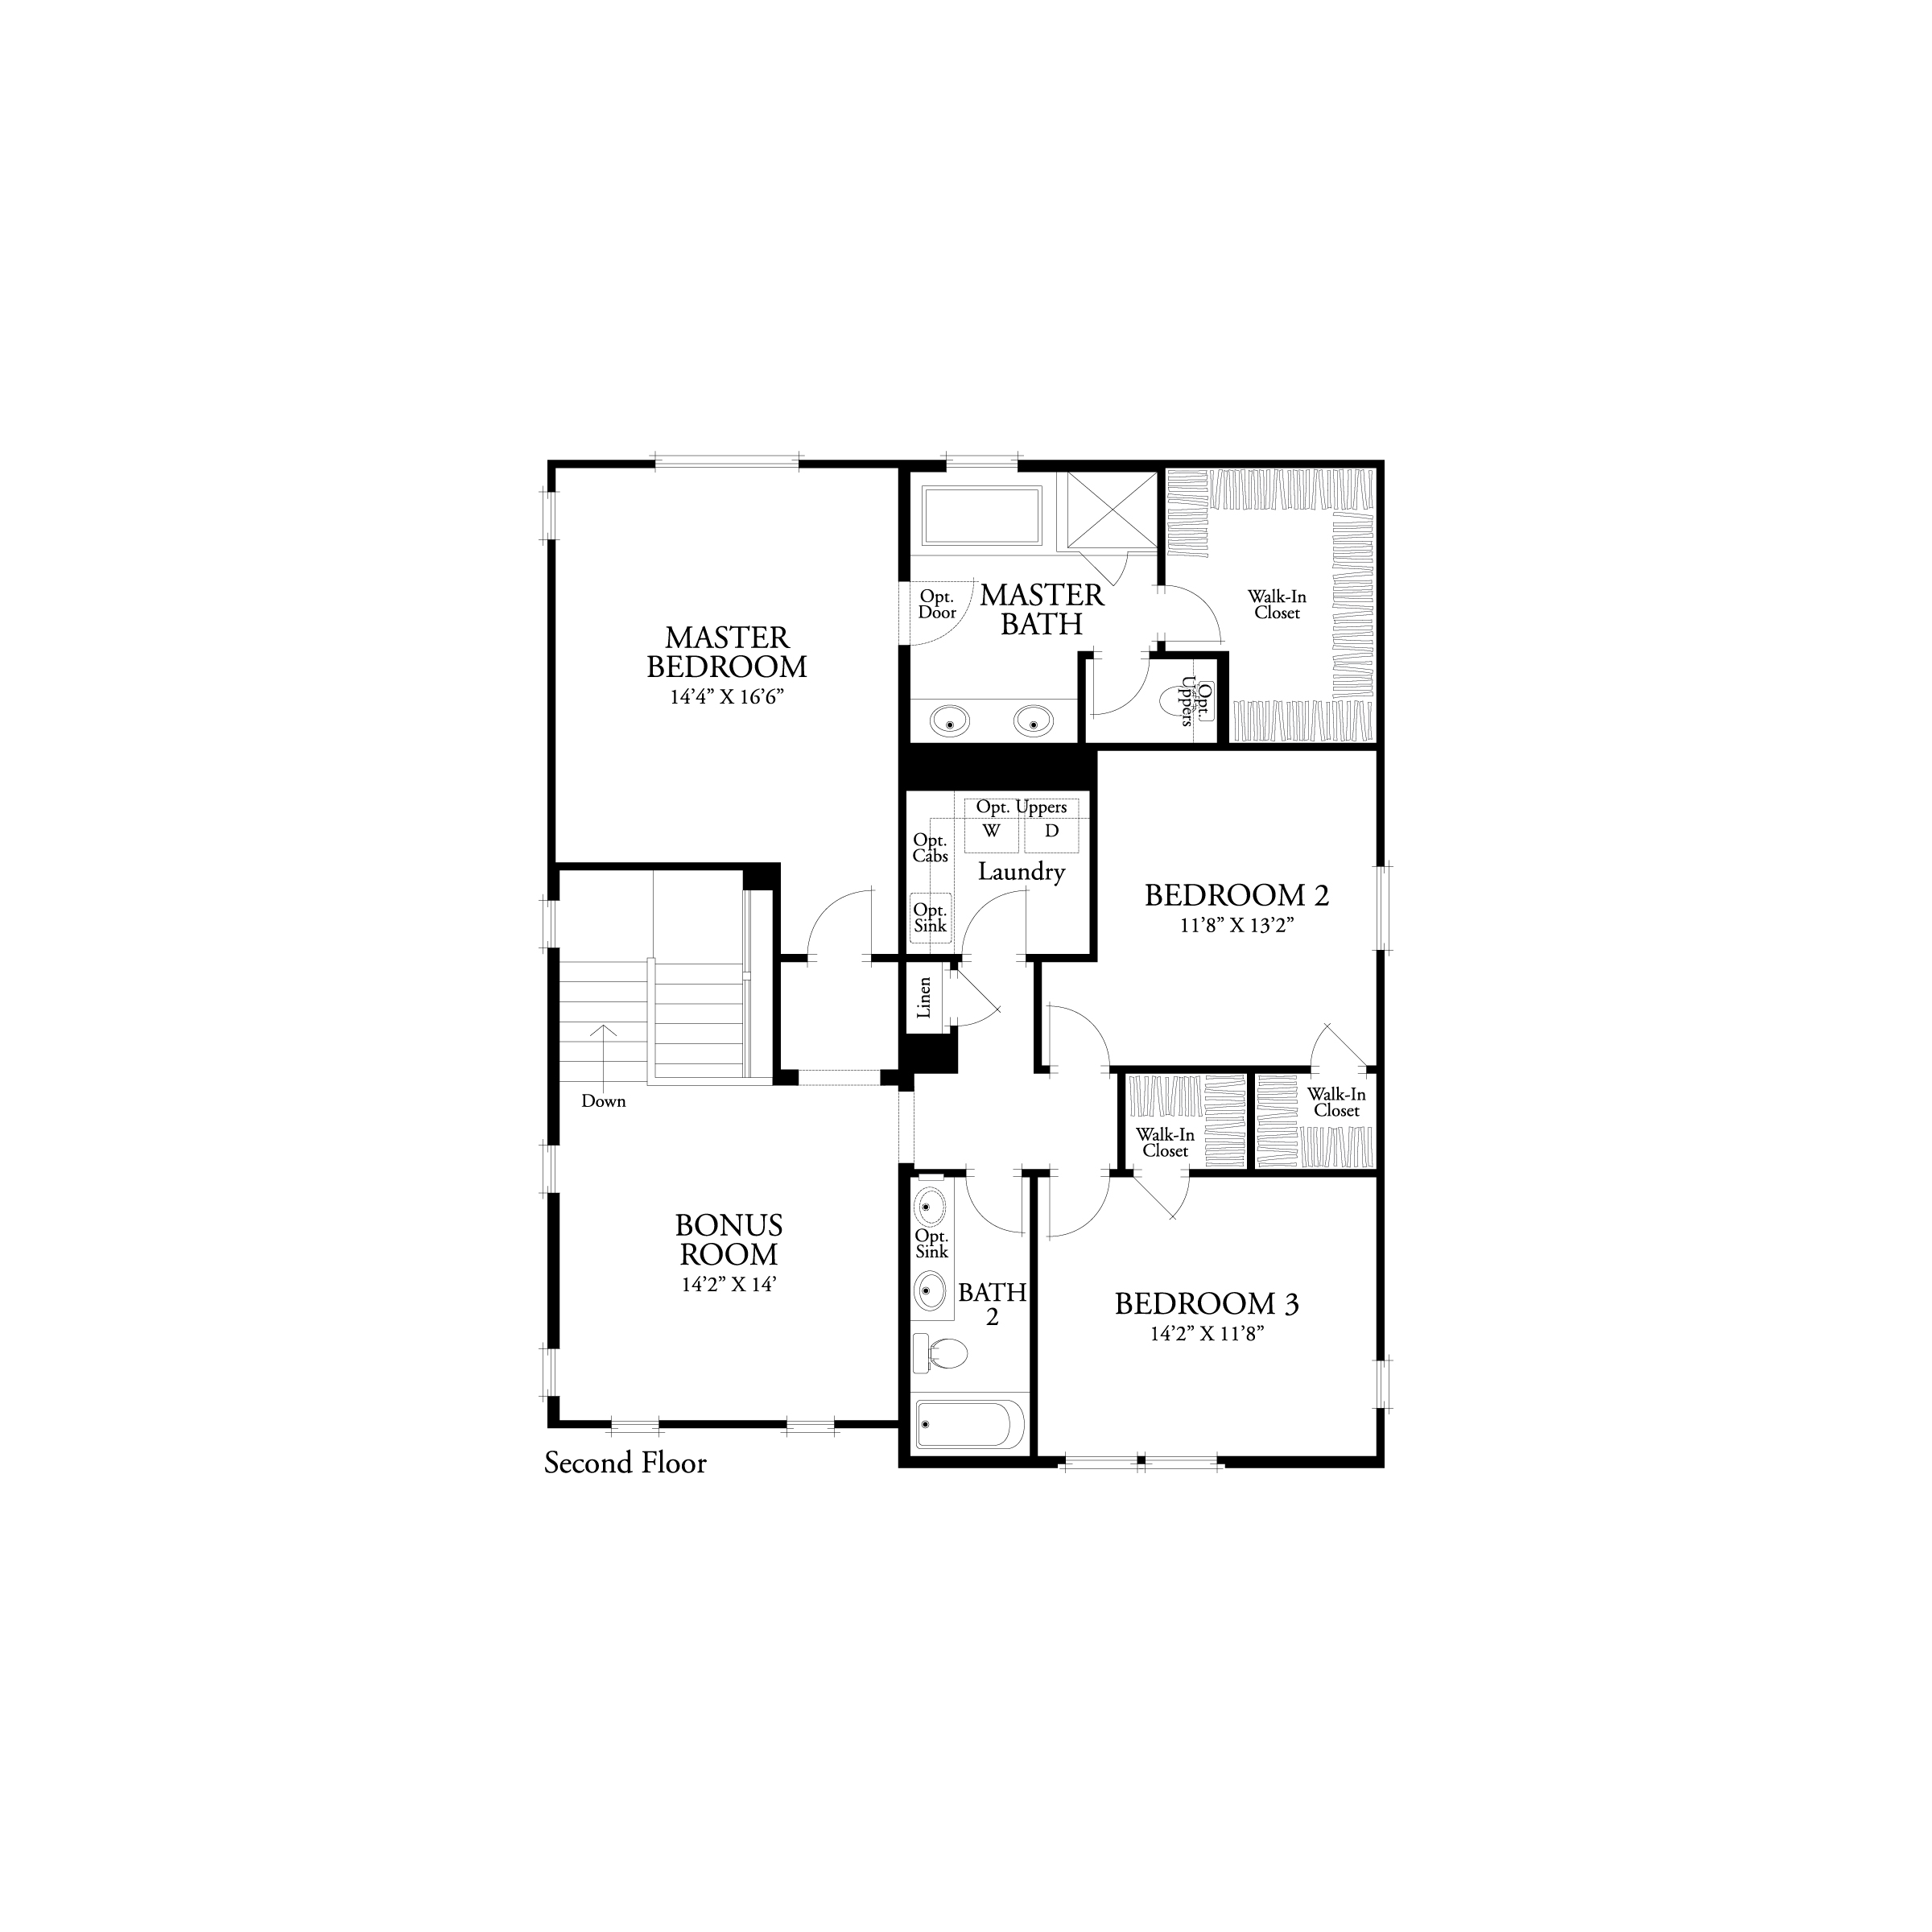 Second floor residence 1 floor plan | Marigold at New Haven in Ontario Ranch, CA | Brookfield Residential